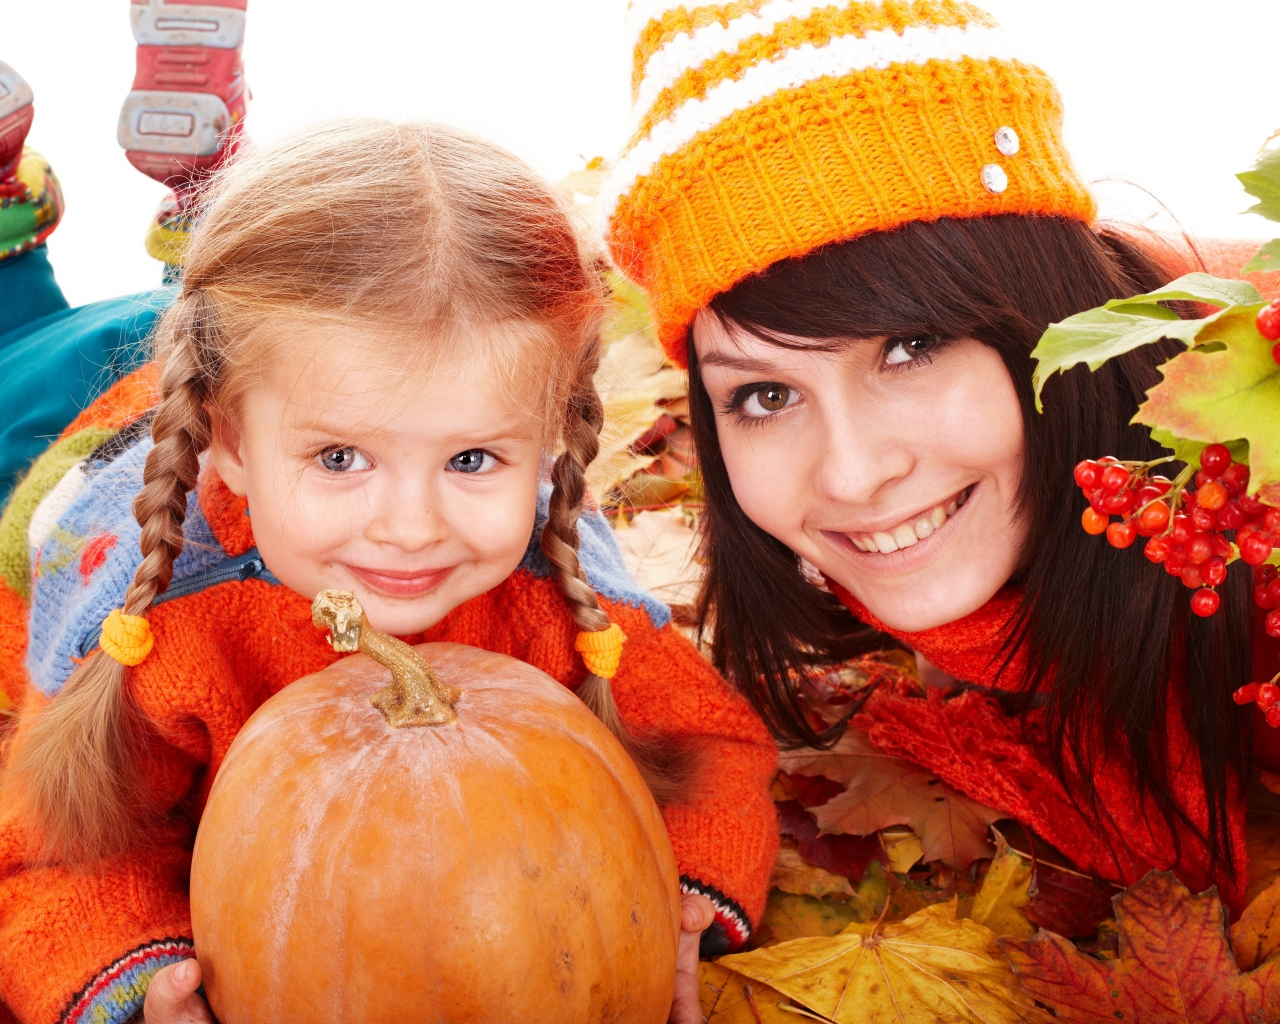 mother_daughter_pumpkins_leaves_autumn_80463_1280x1024